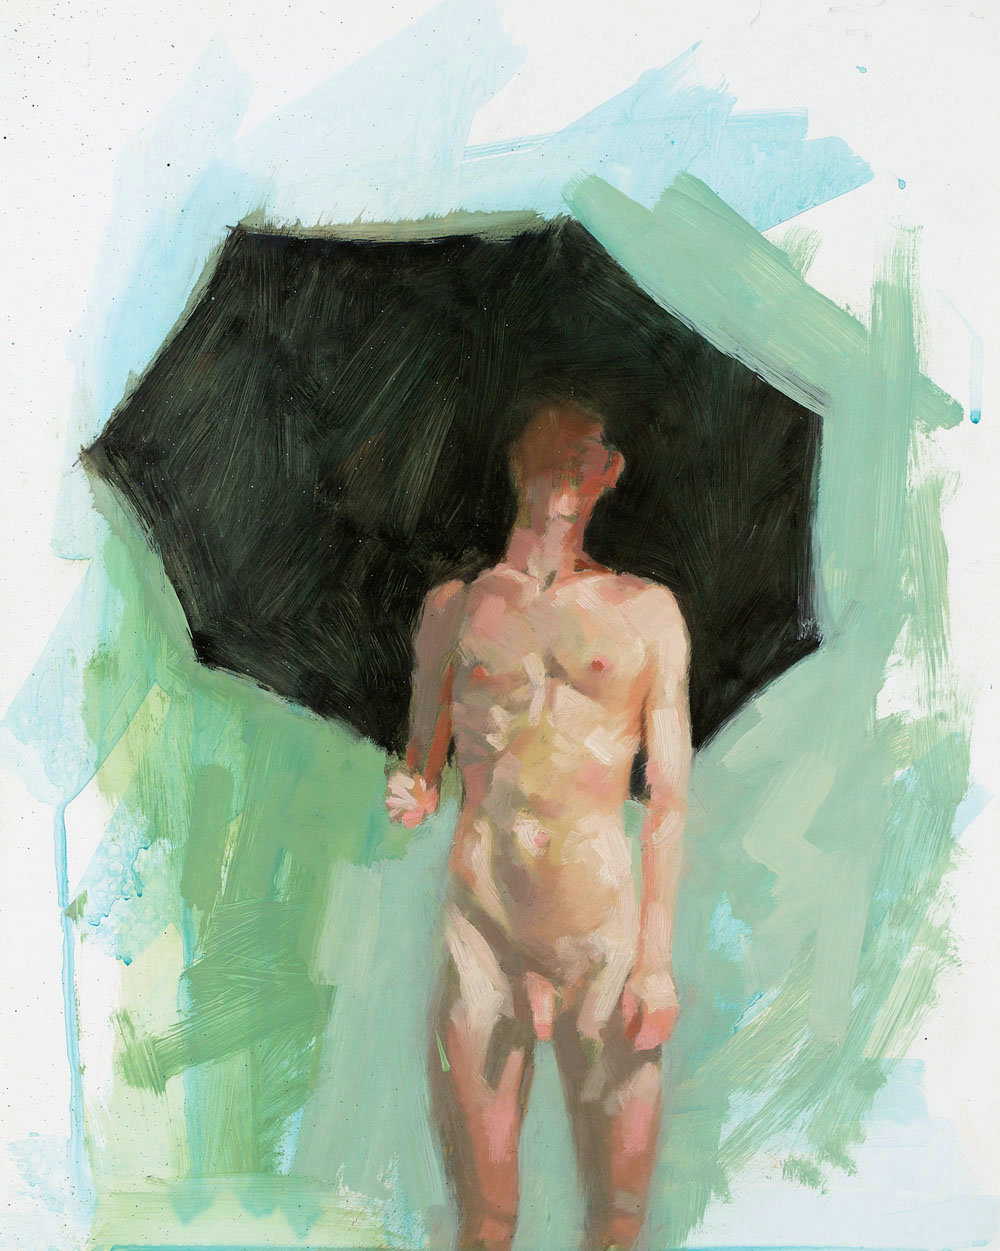 Umbrella Study No. 2   20 x 16 inches  oil on TerraSkin